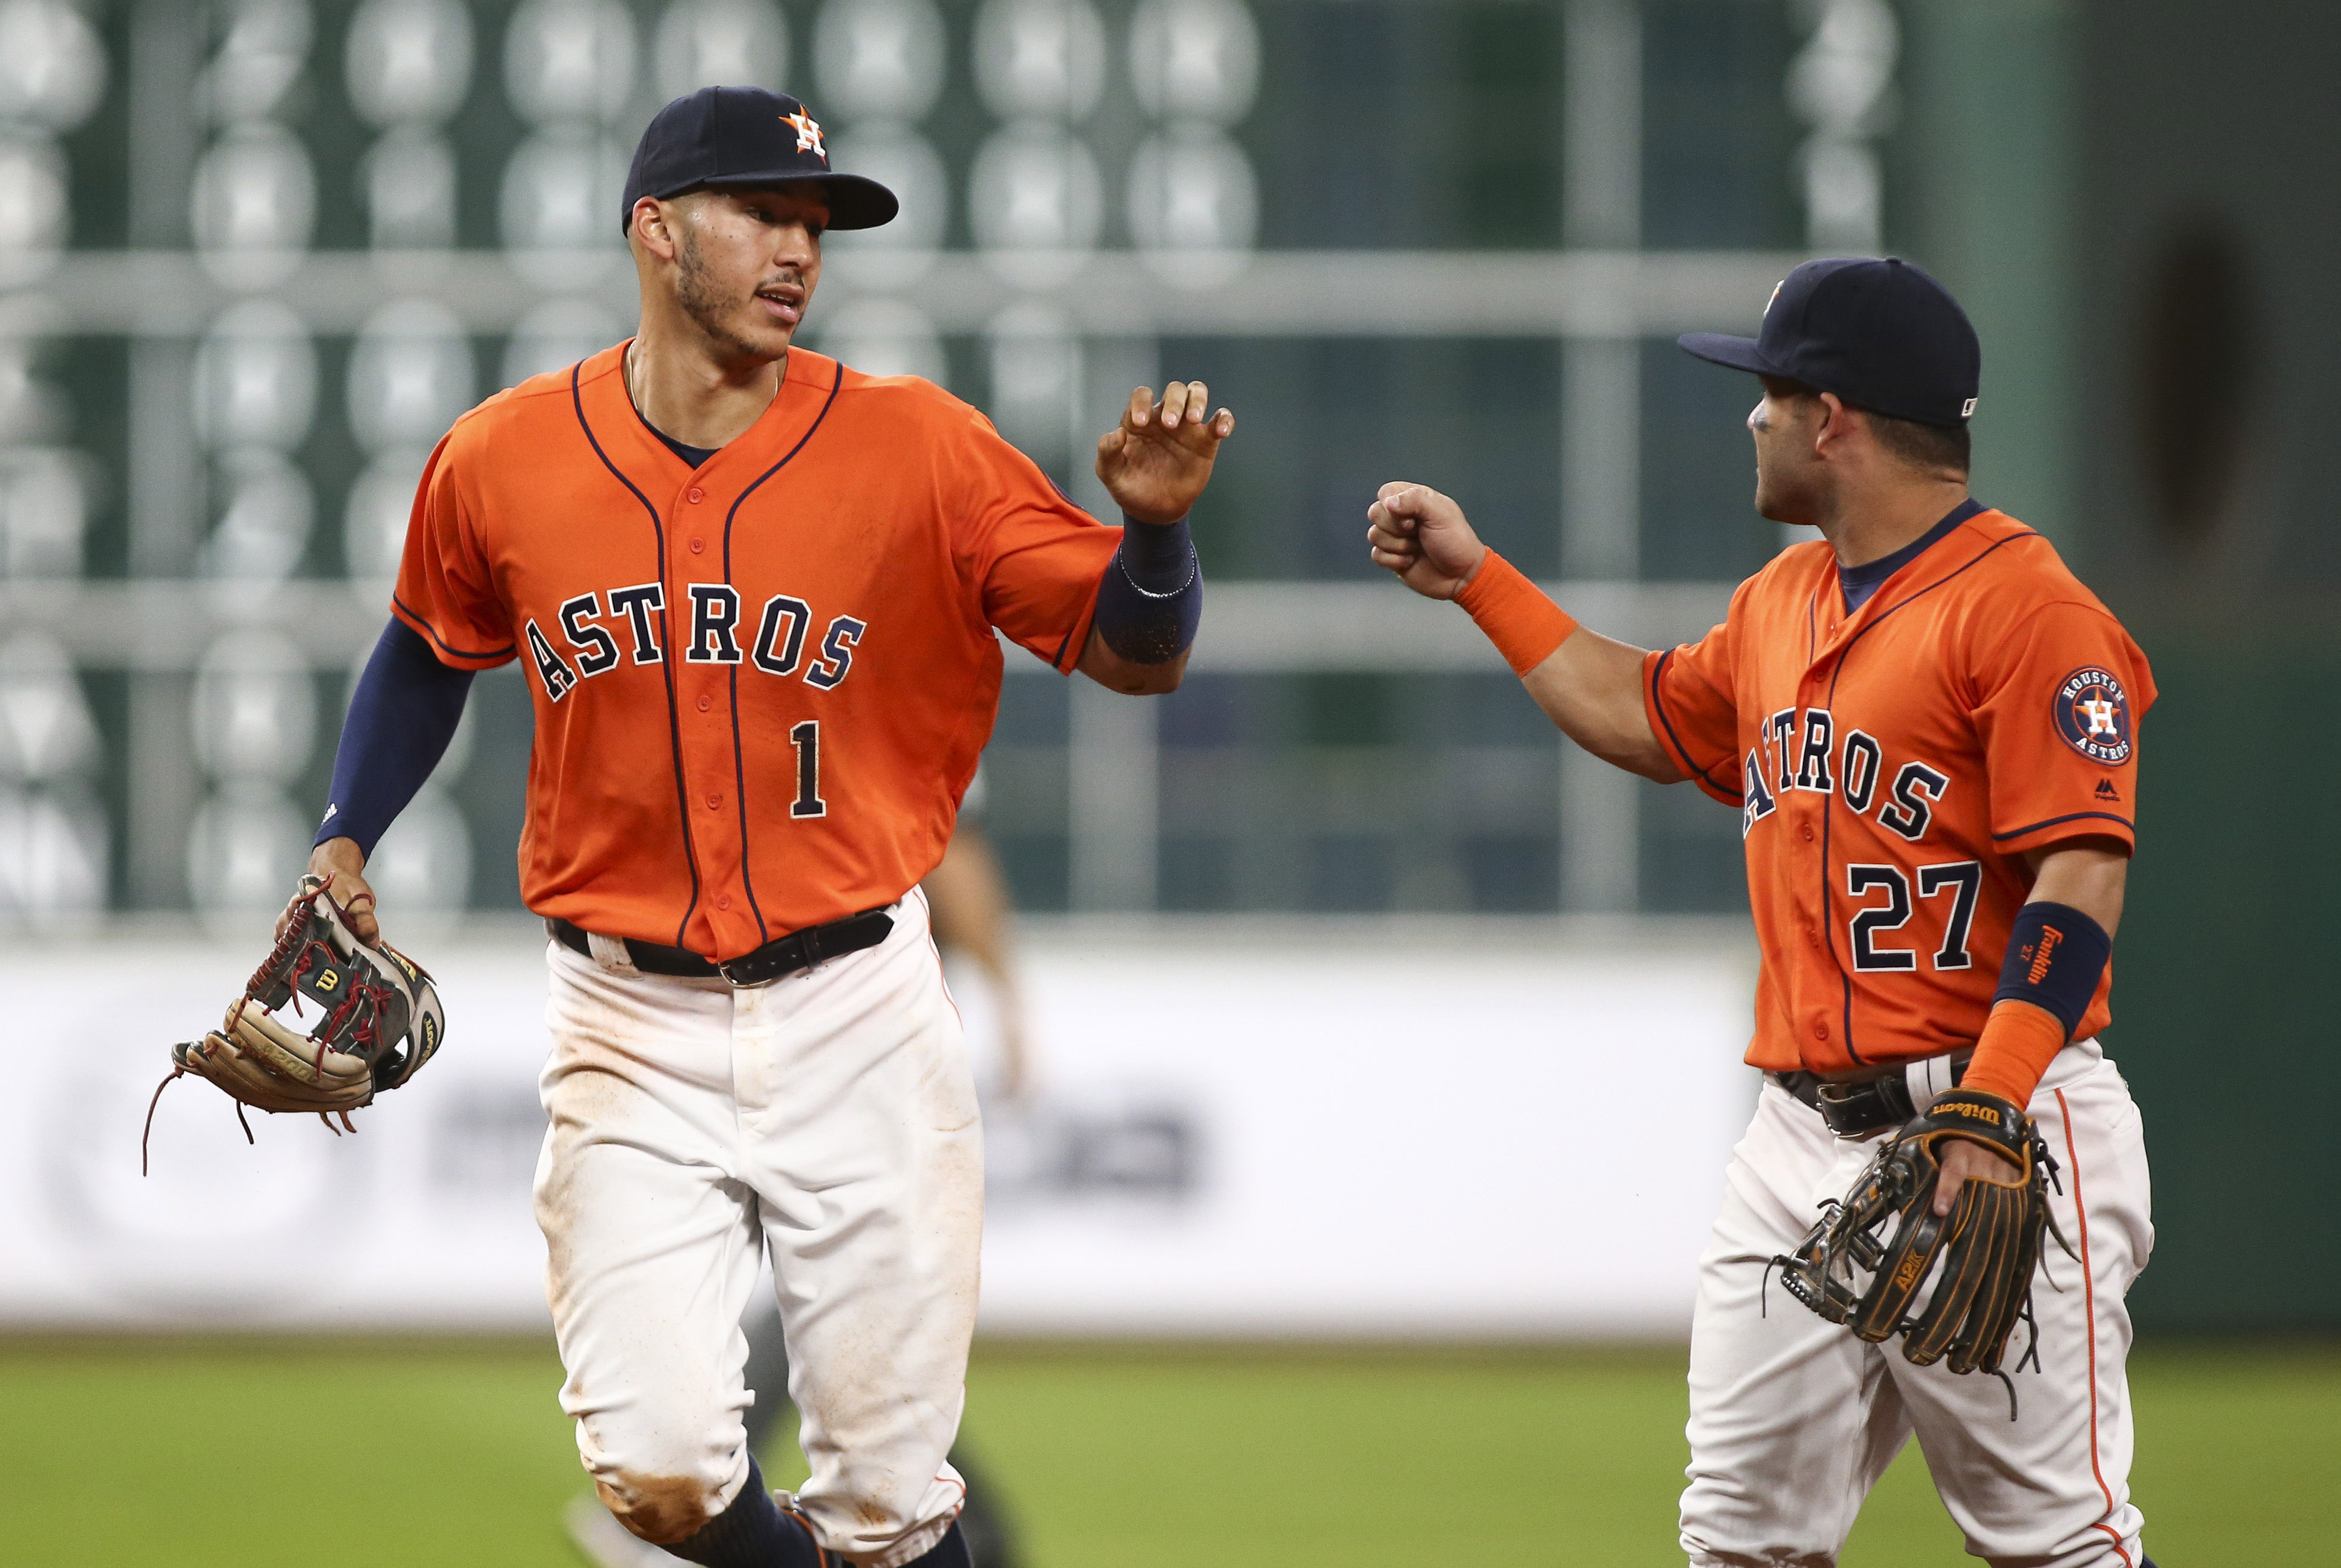 How Can the Astros Make Baseball Better?